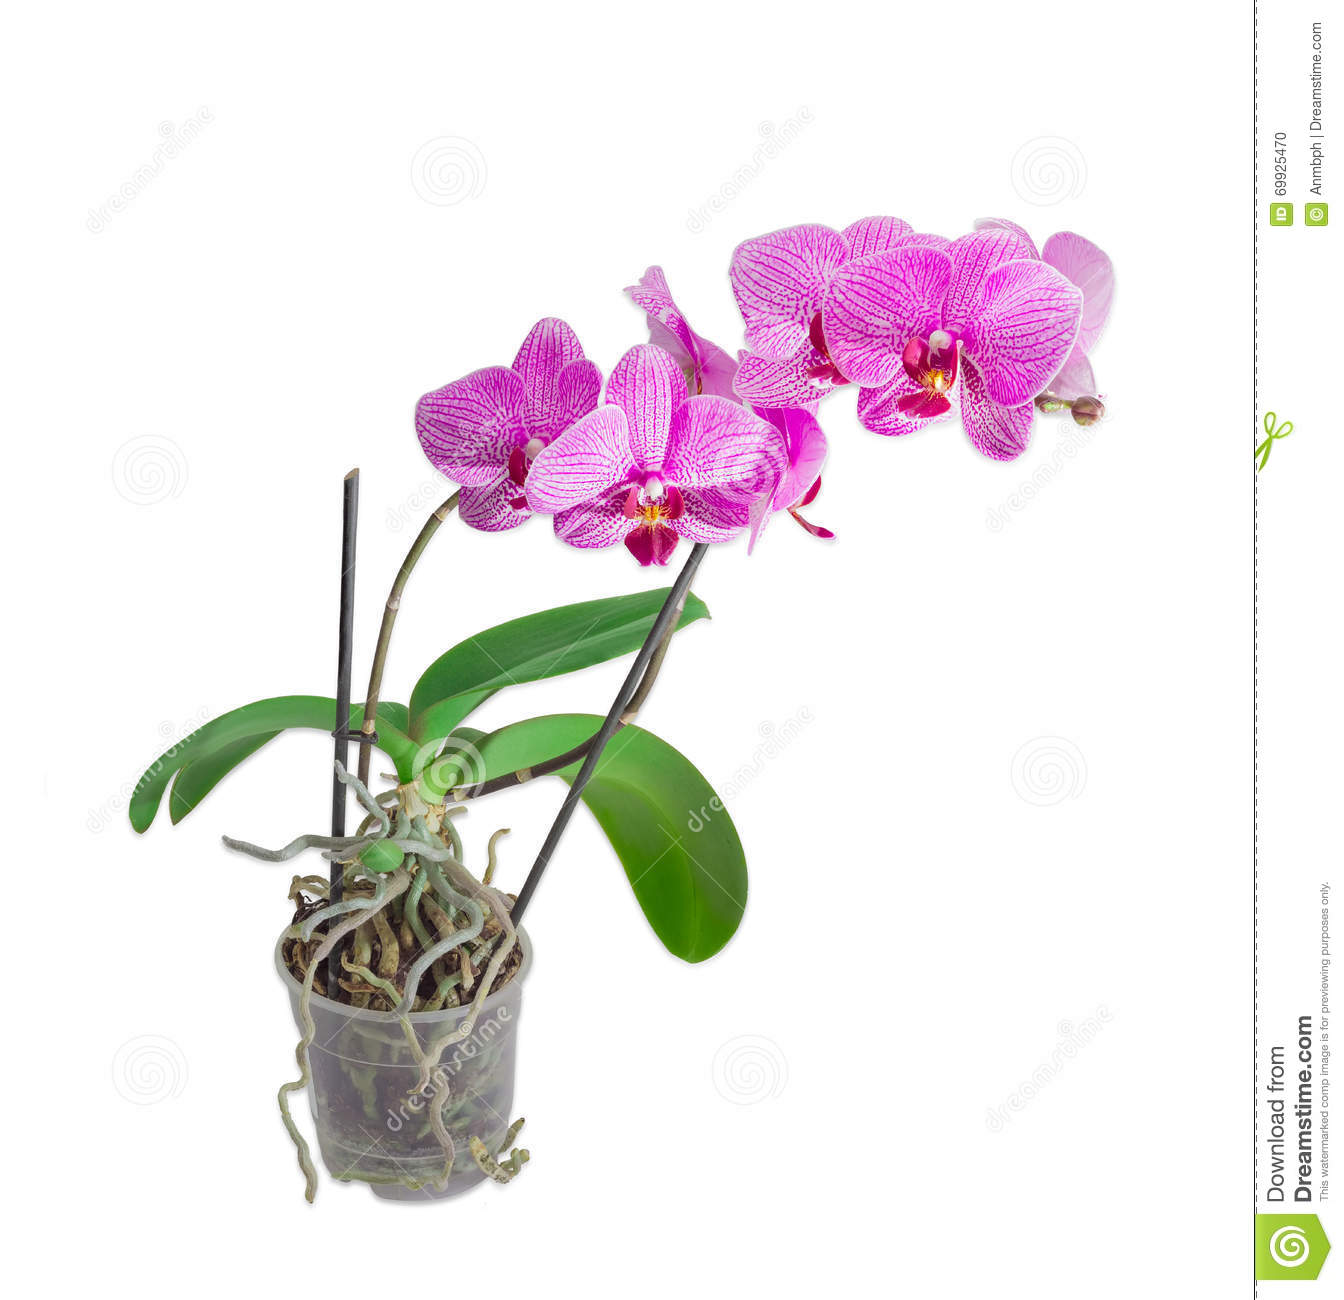 Blooming Phalaenopsis Orchid In A Flower Pot On A Light Backgrou.